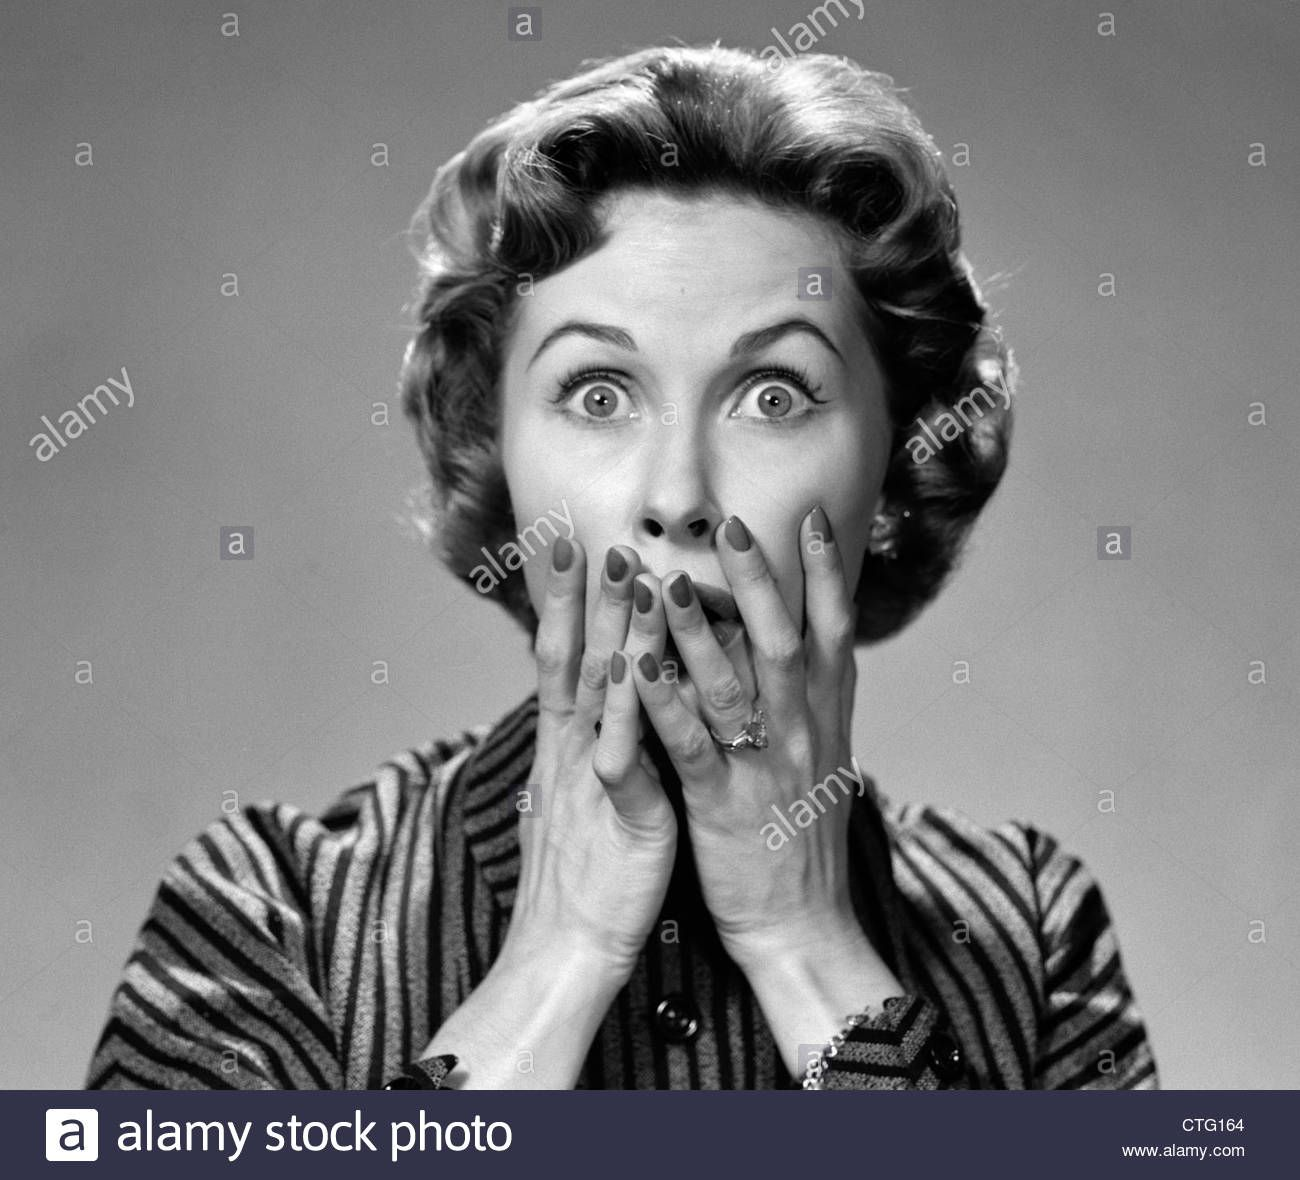 1950s PORTRAIT OF WOMAN IN STRIPED DRESS HANDS TO MOUTH